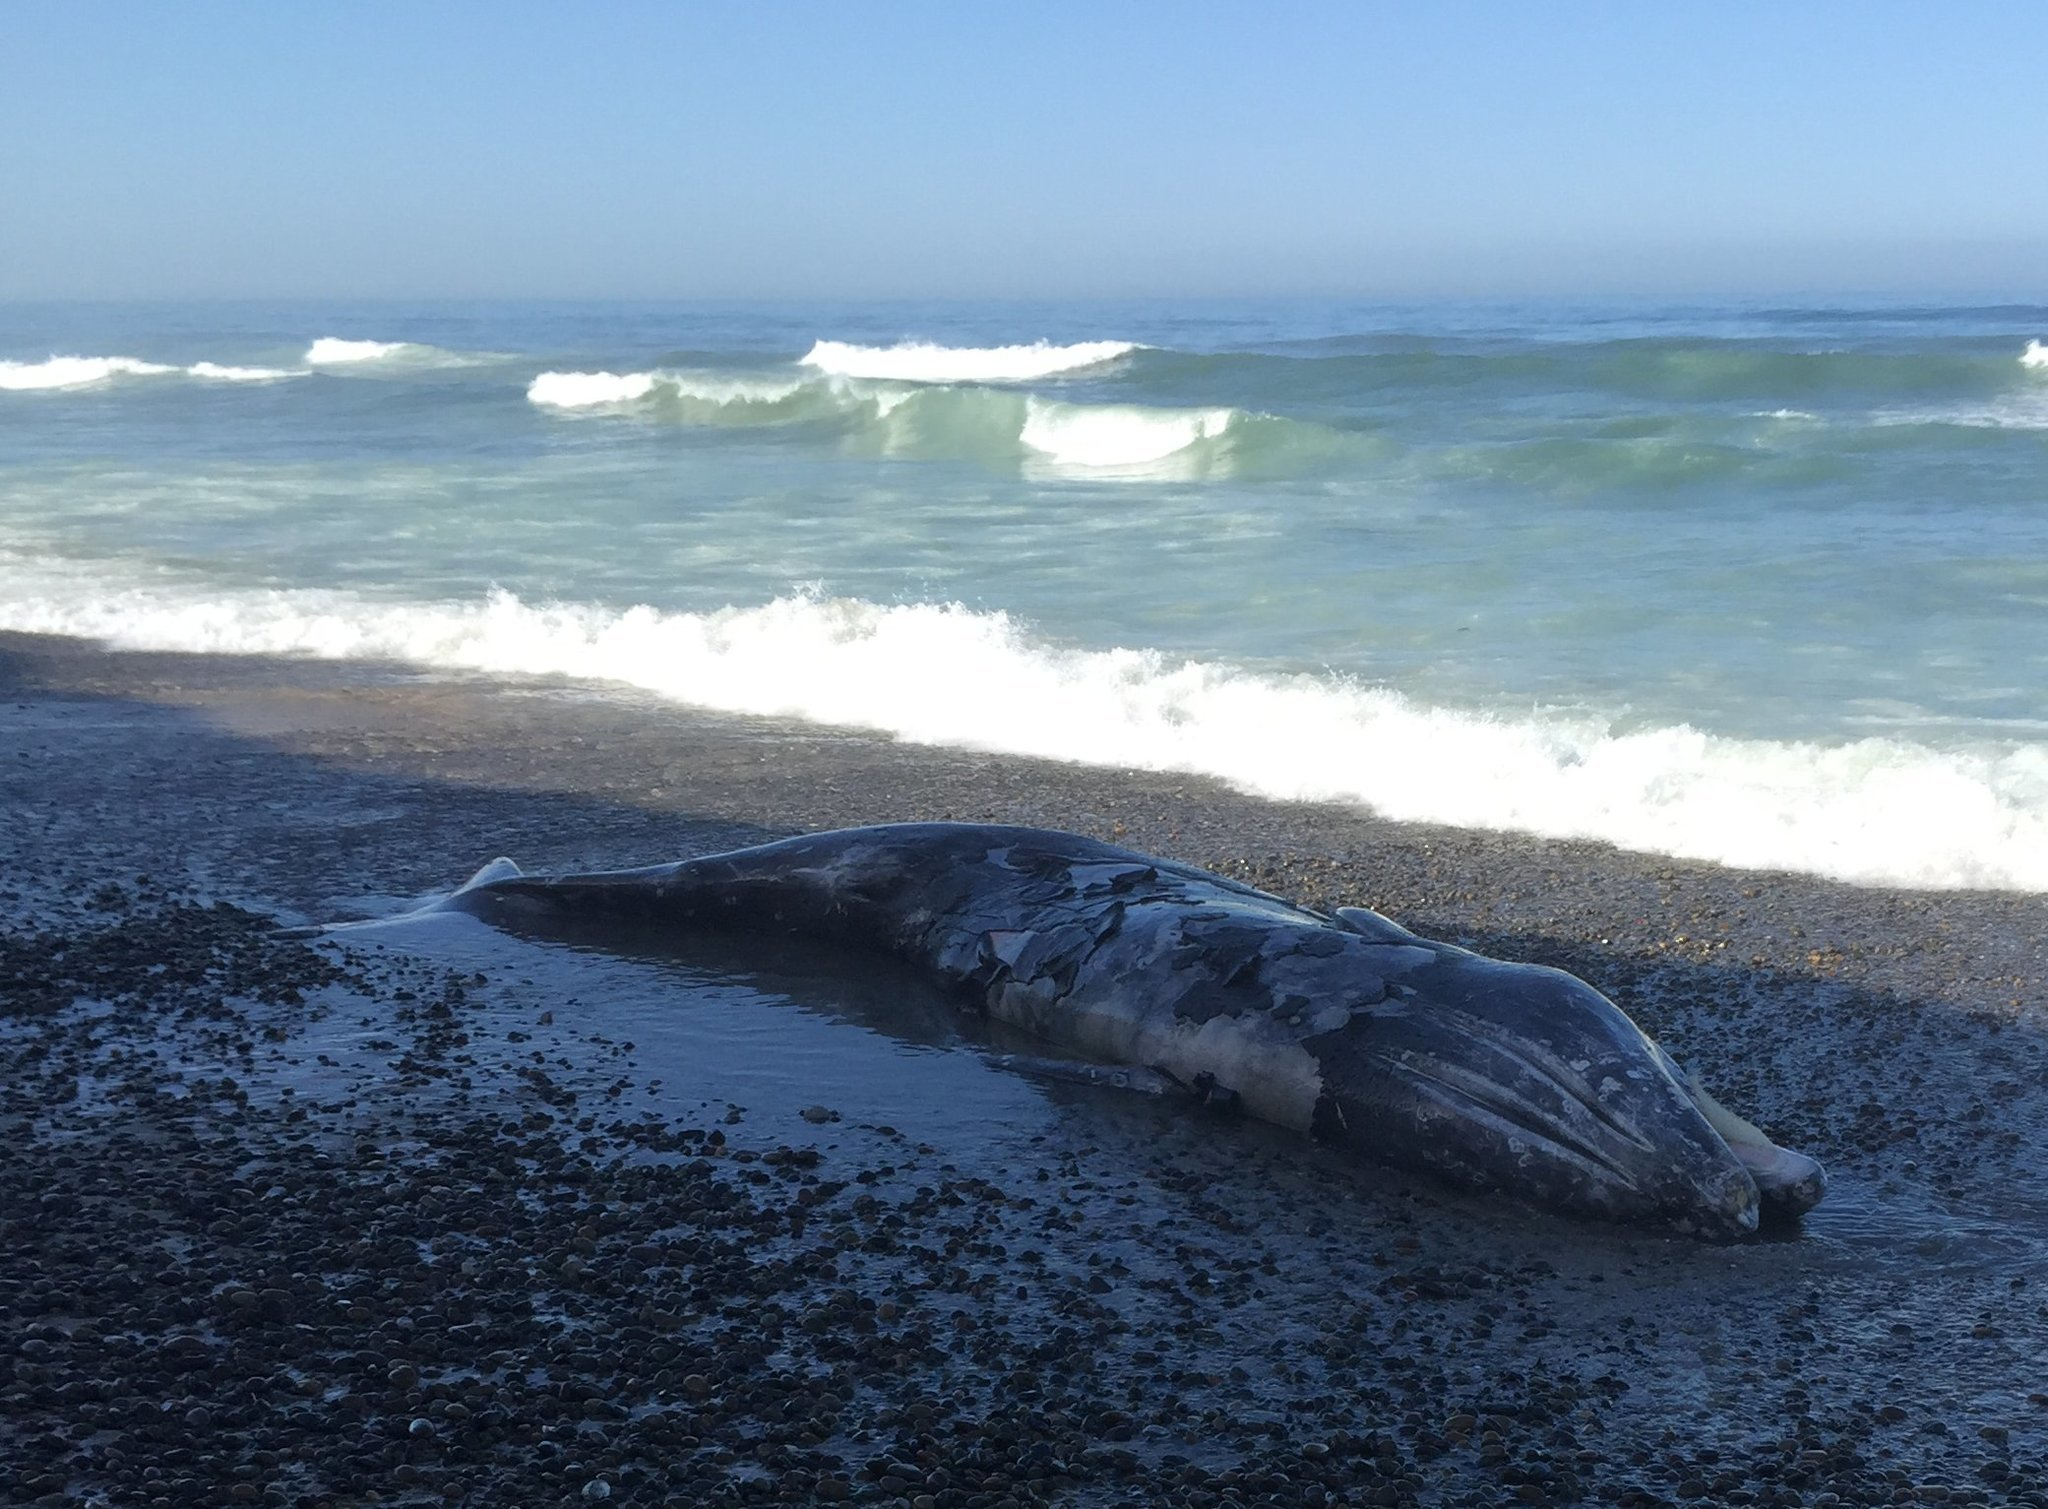 Dead Whale Washes As At Torrey Pines State Beach The San Go Union Tribune